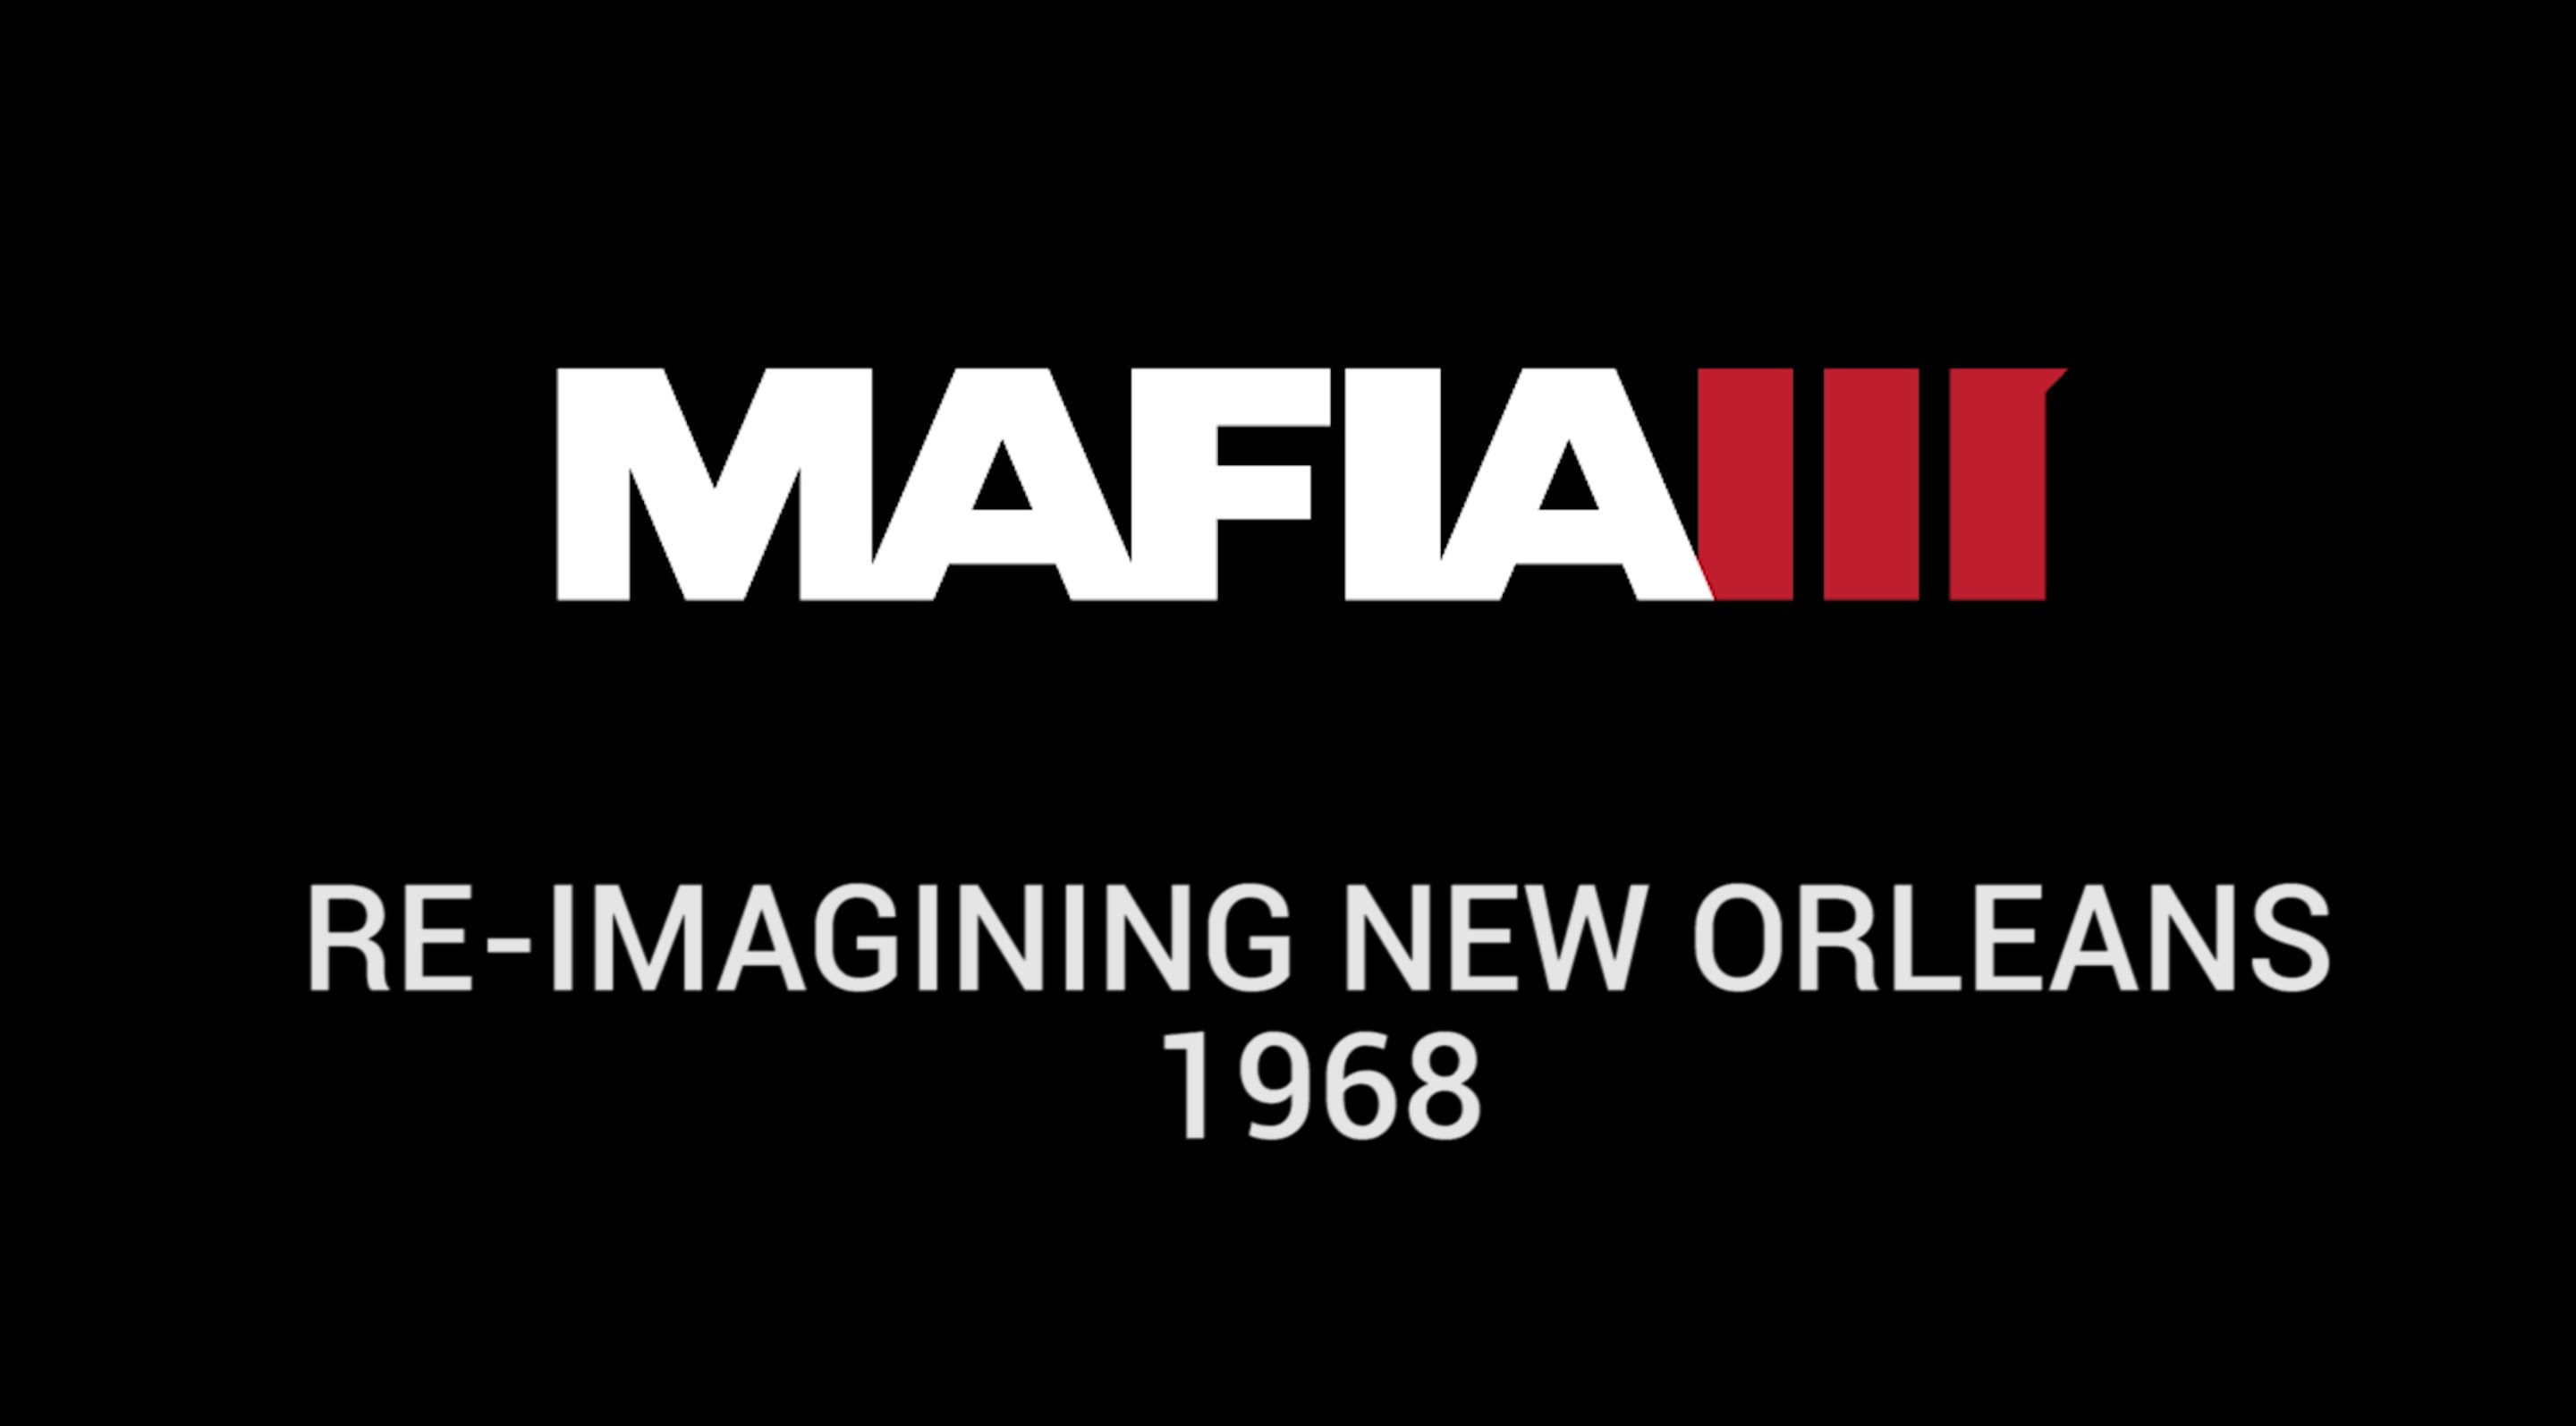 Mafia III Inside Look - Re-imagining New Orleans 1968